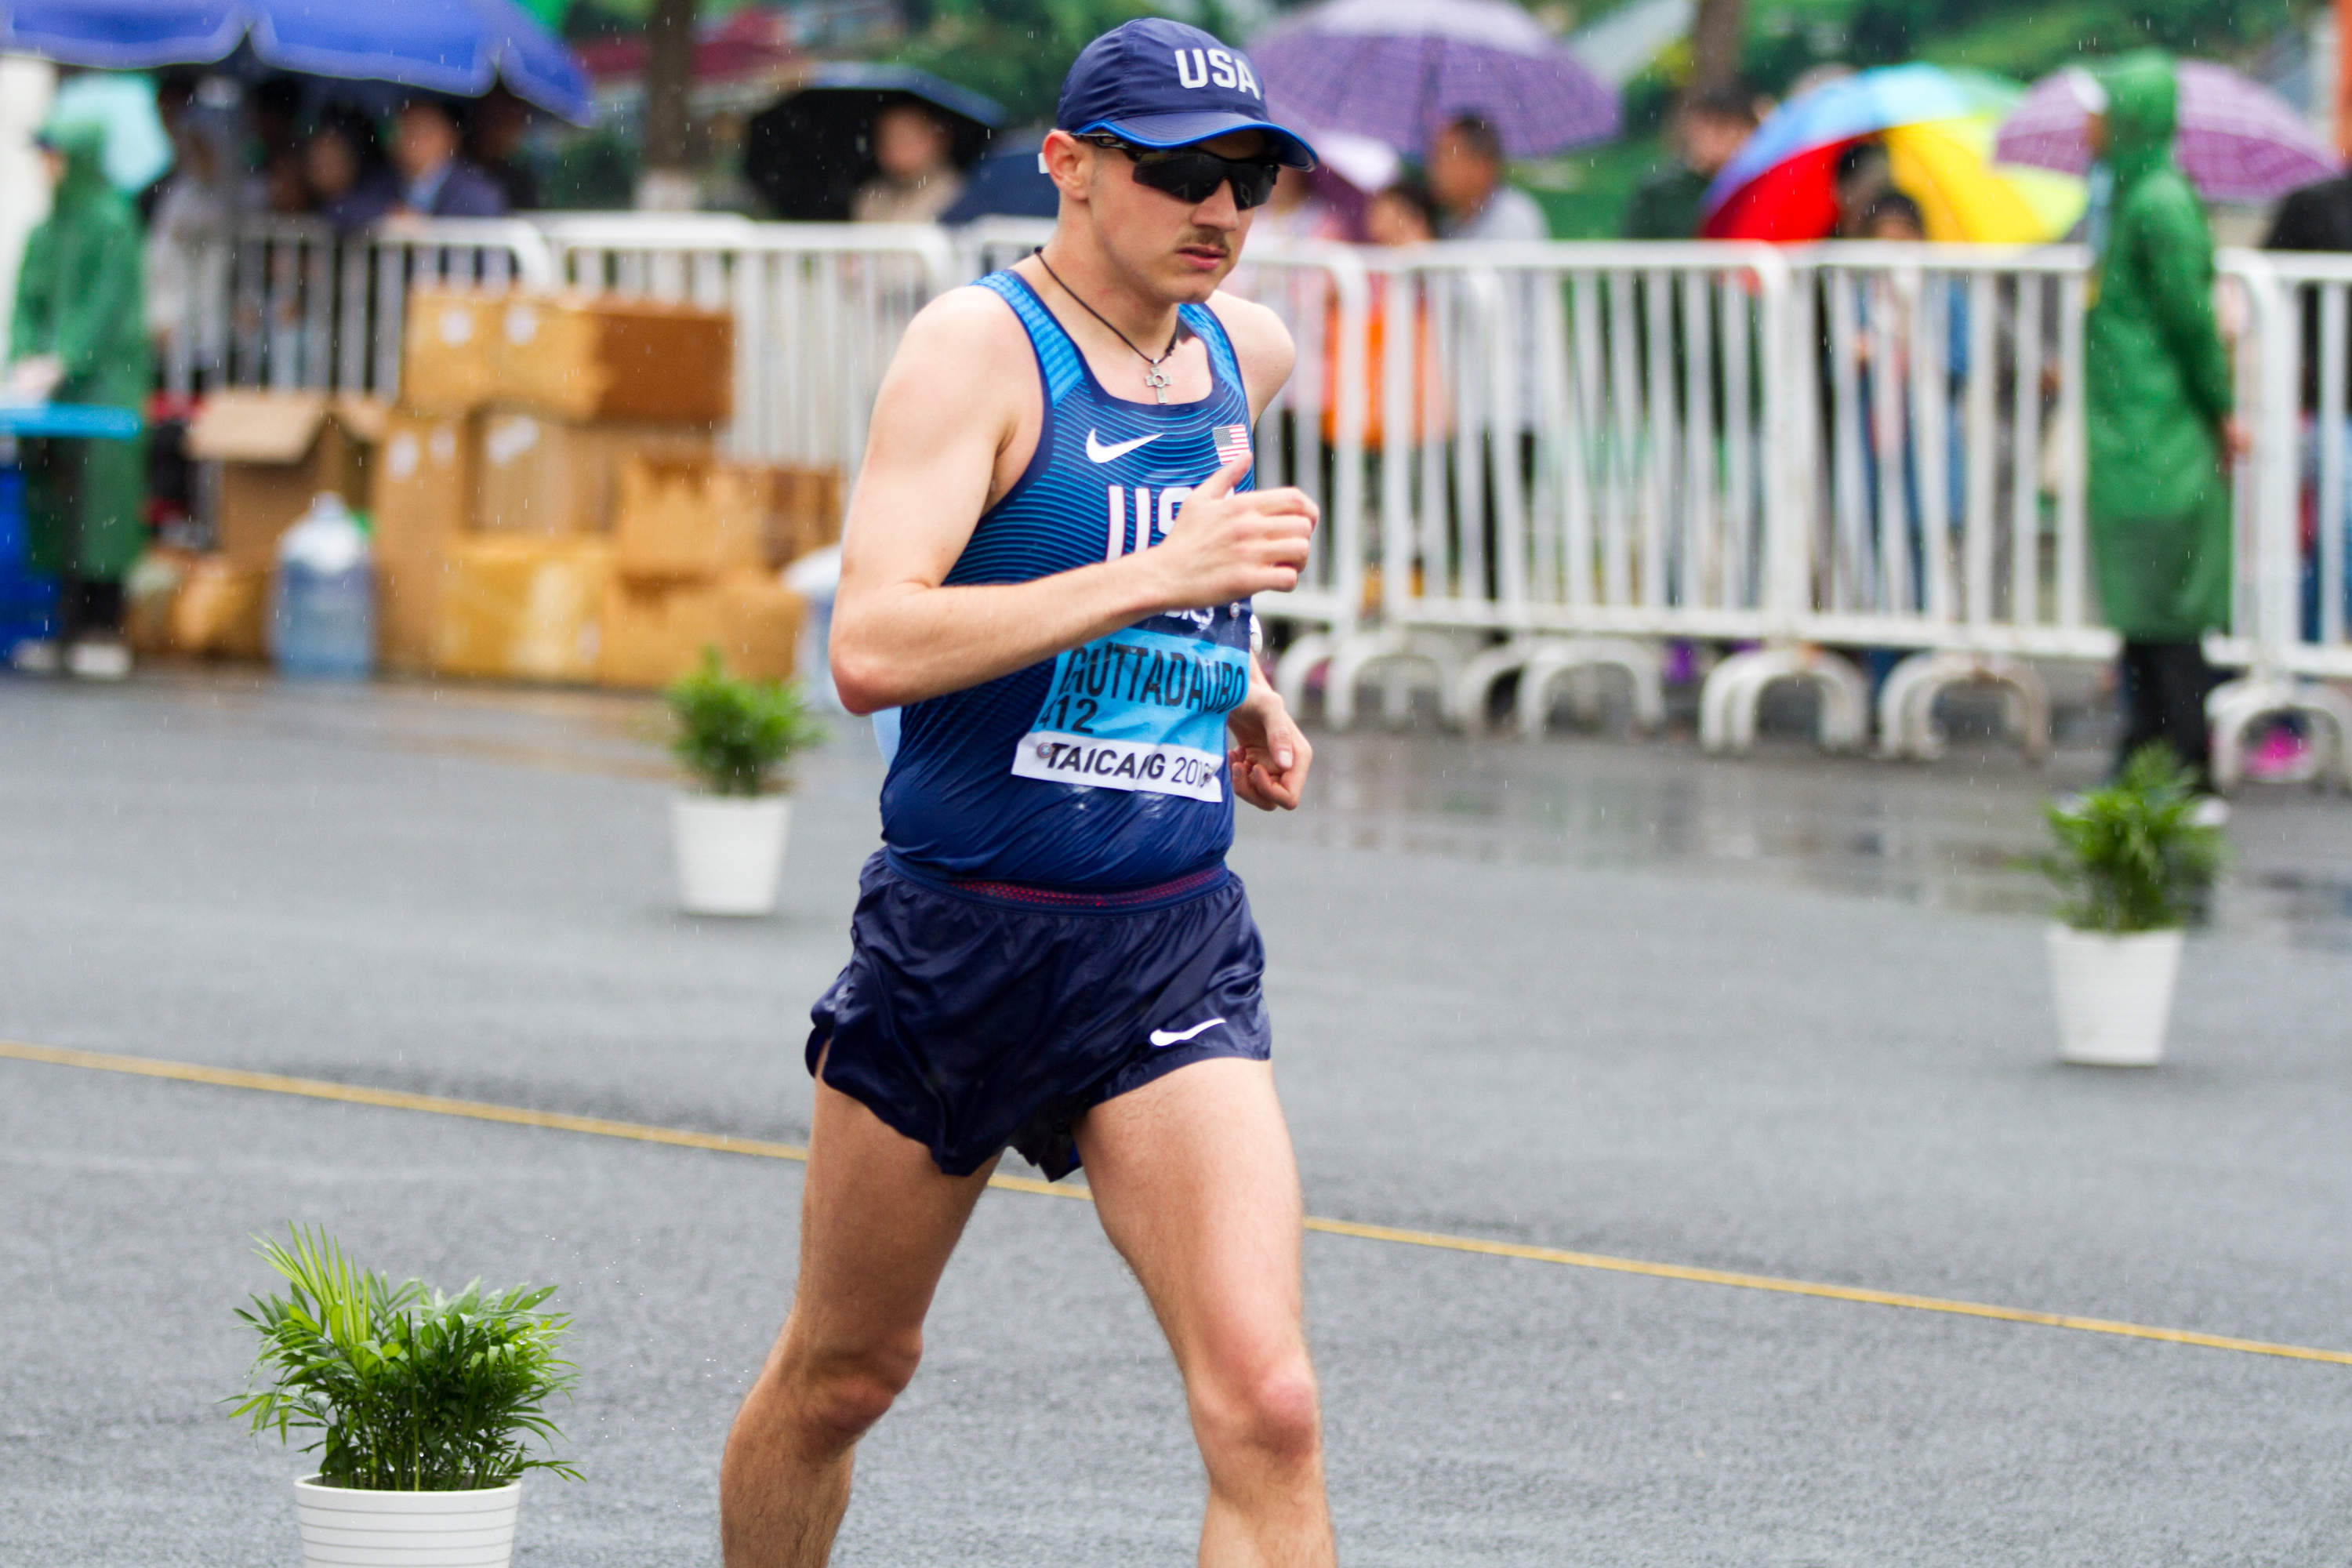 AJ Gruttadauro in competition in China. Photo courtesy of Race Walk Pictures. Provided photo